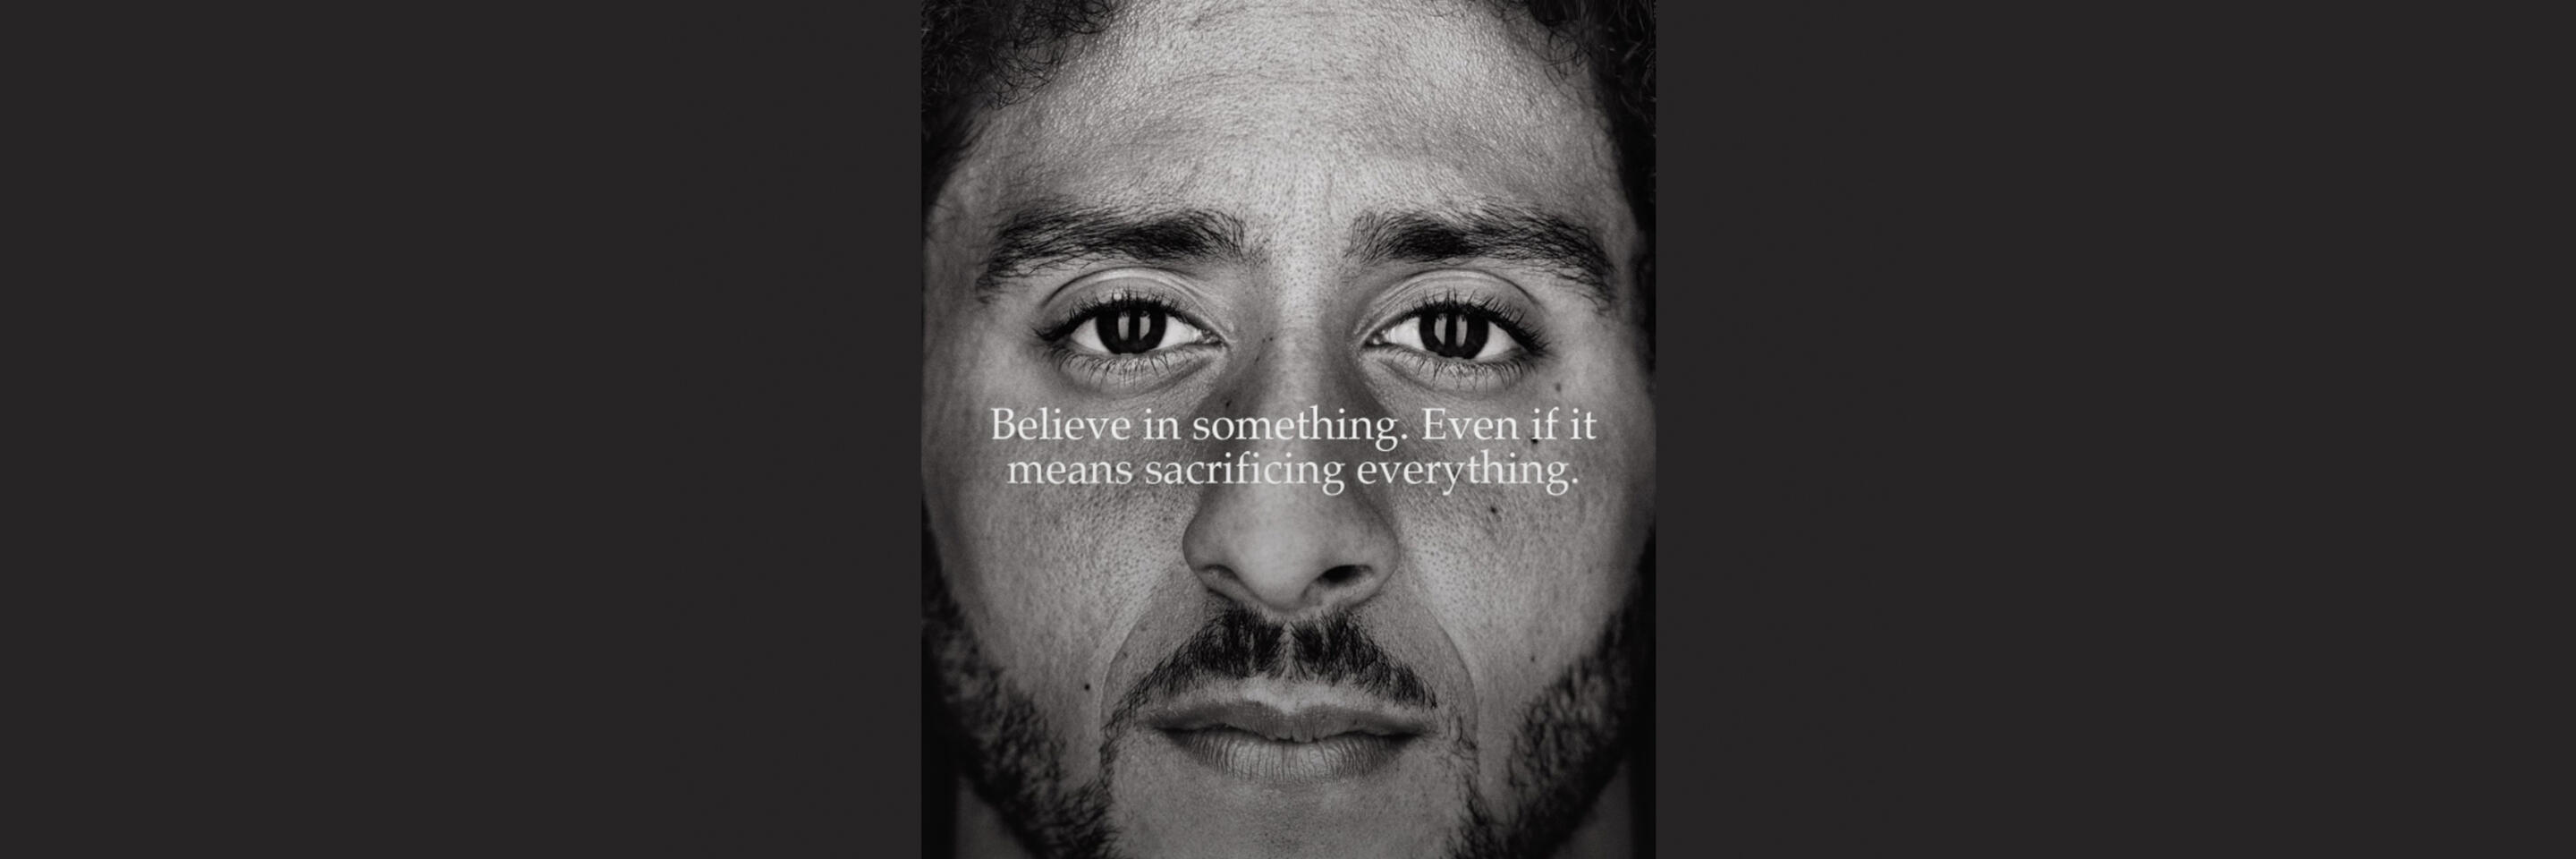 In Kaepernick Ads Nike Further Develops Its Brand Point Of View Mit Sloan